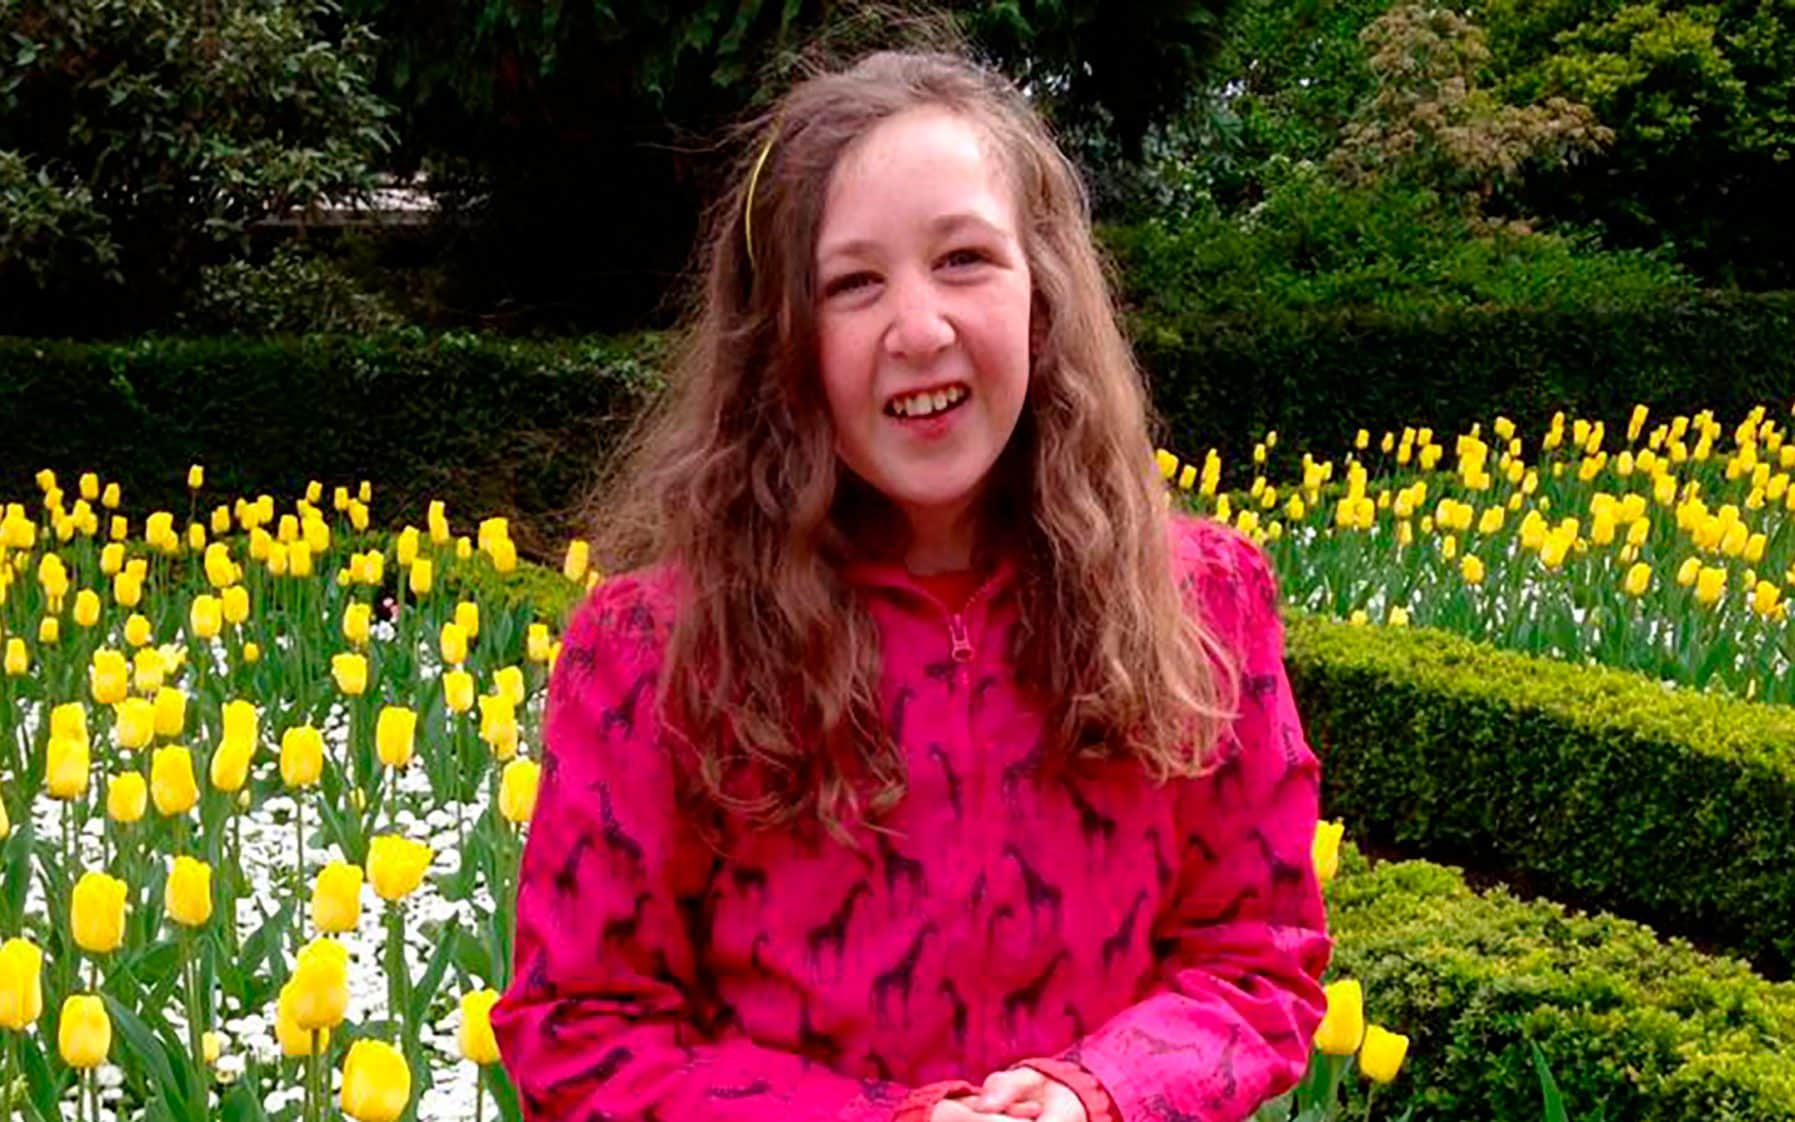 Nora Quoirin death: family urges police to continue to investigate after foul play ruled out